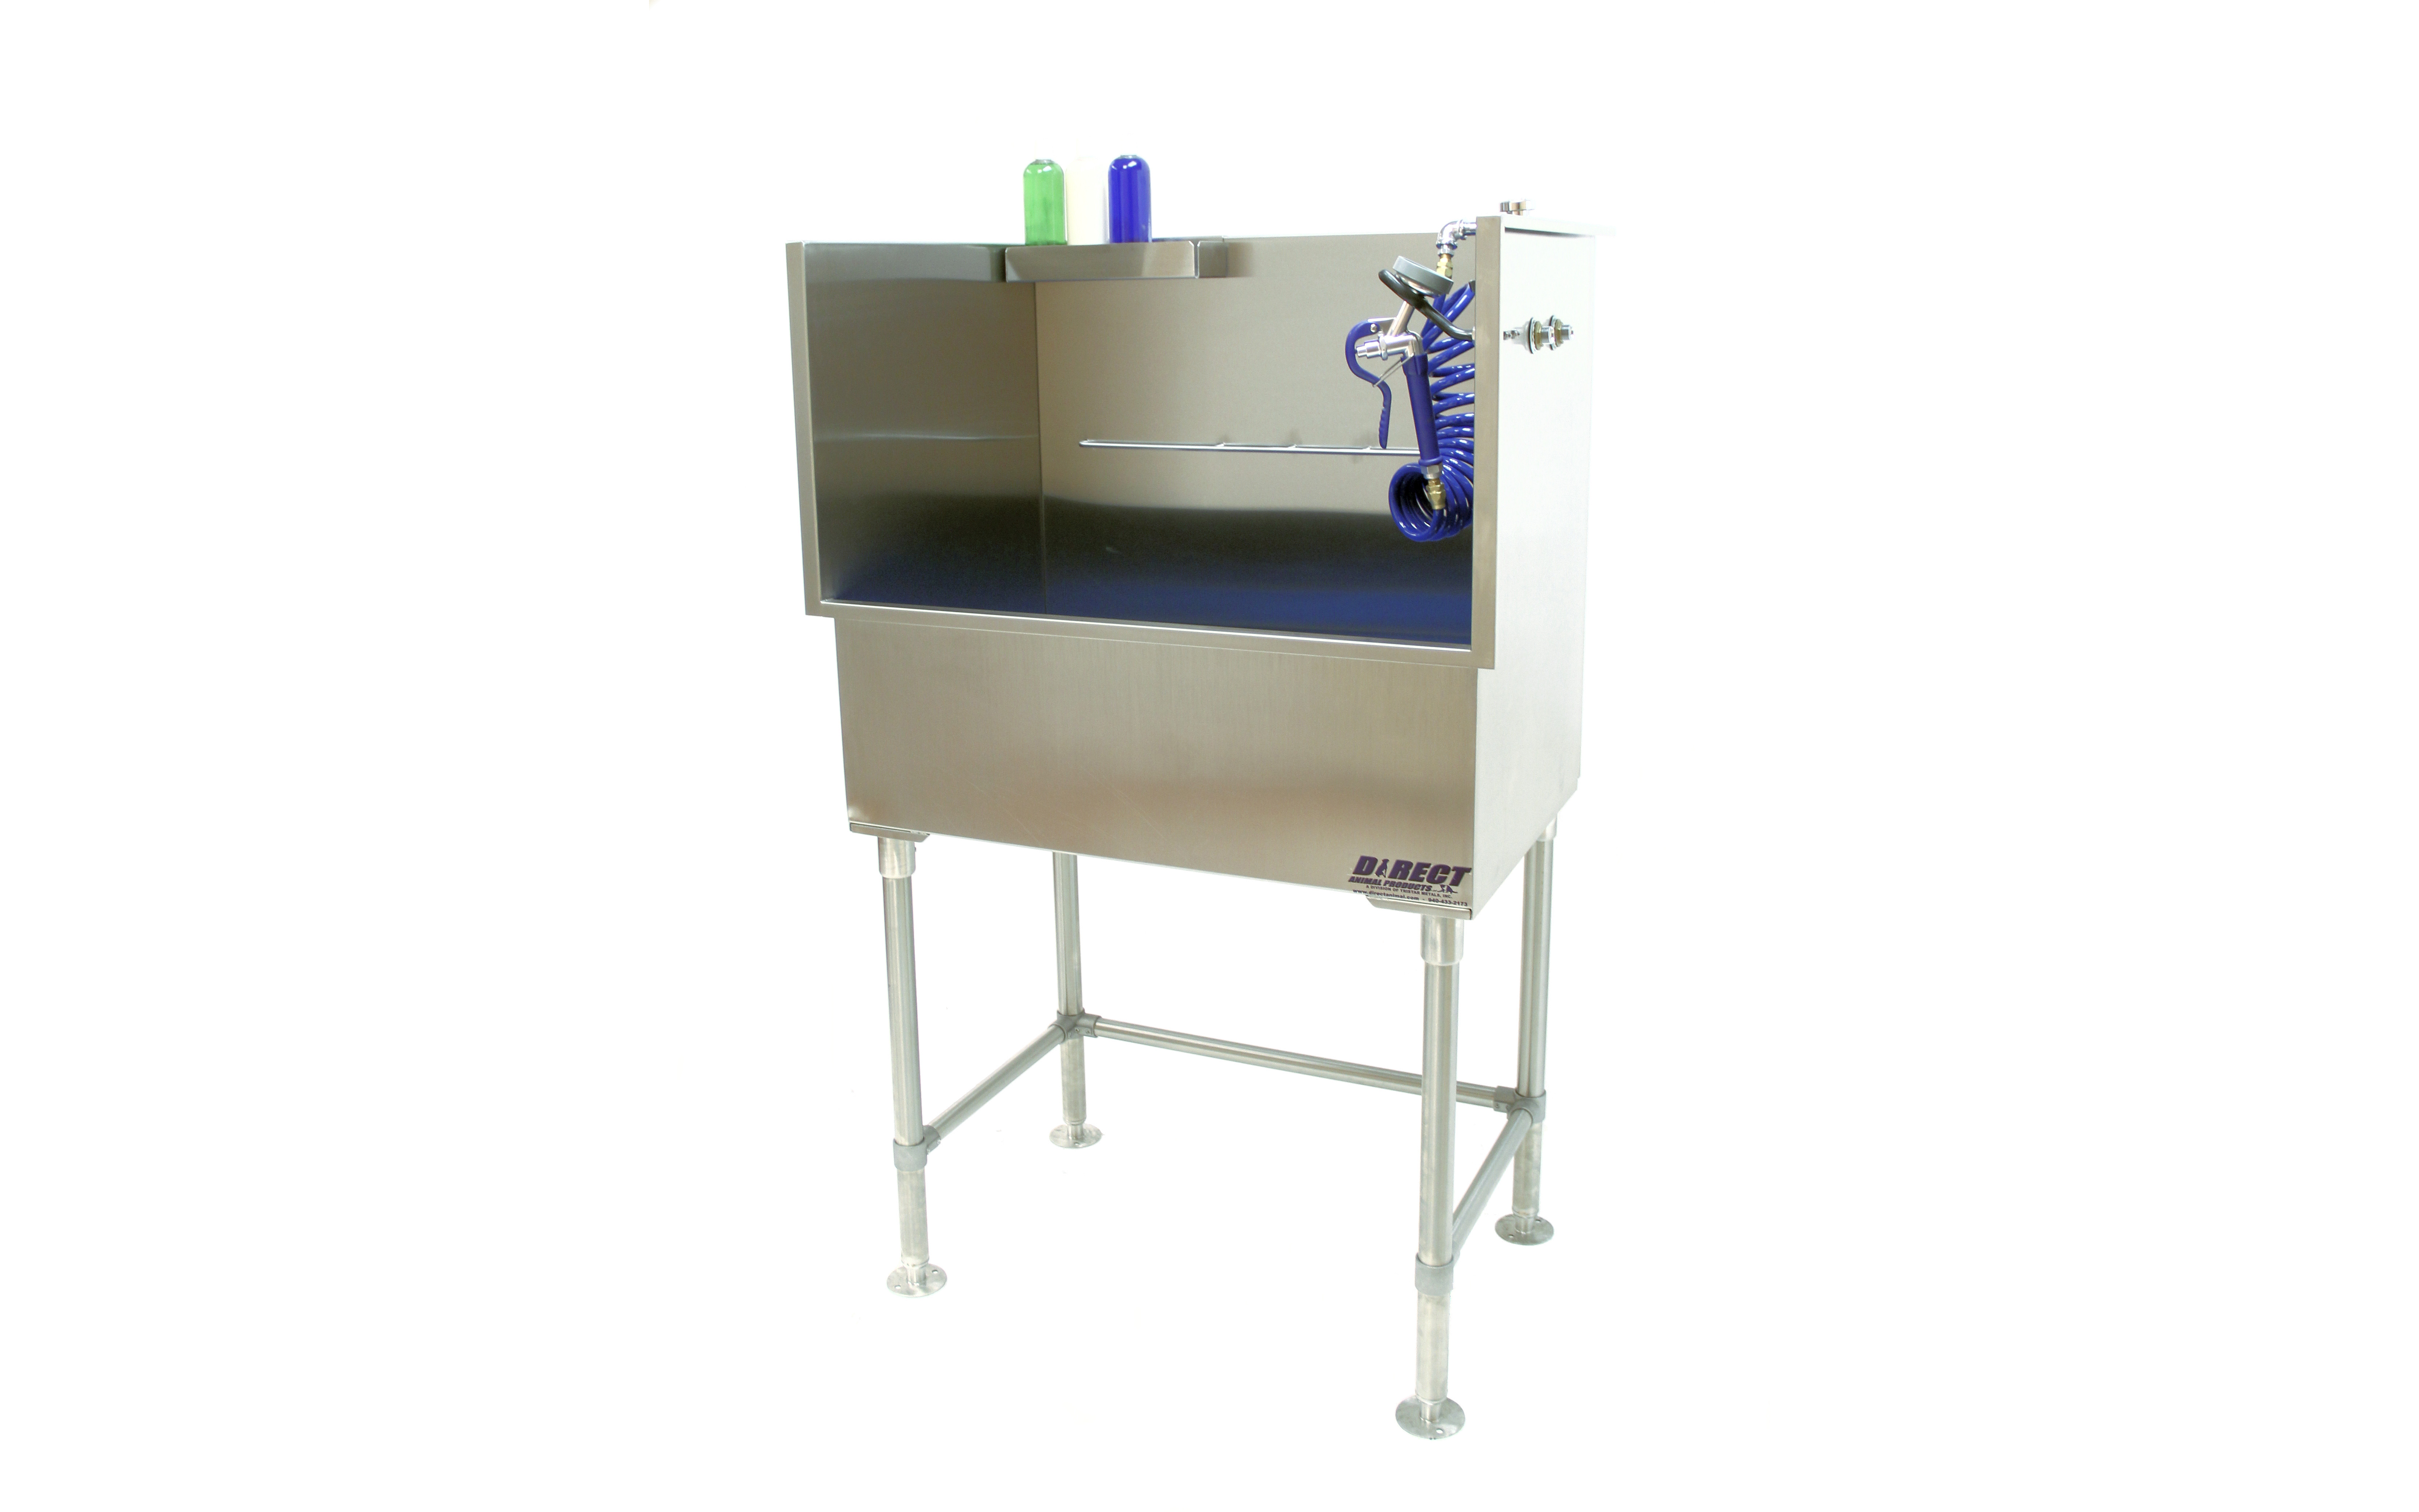 Attirant Direct Animal Photo: The Best In The Business: Our Stainless Steel Elevated Dog  Grooming